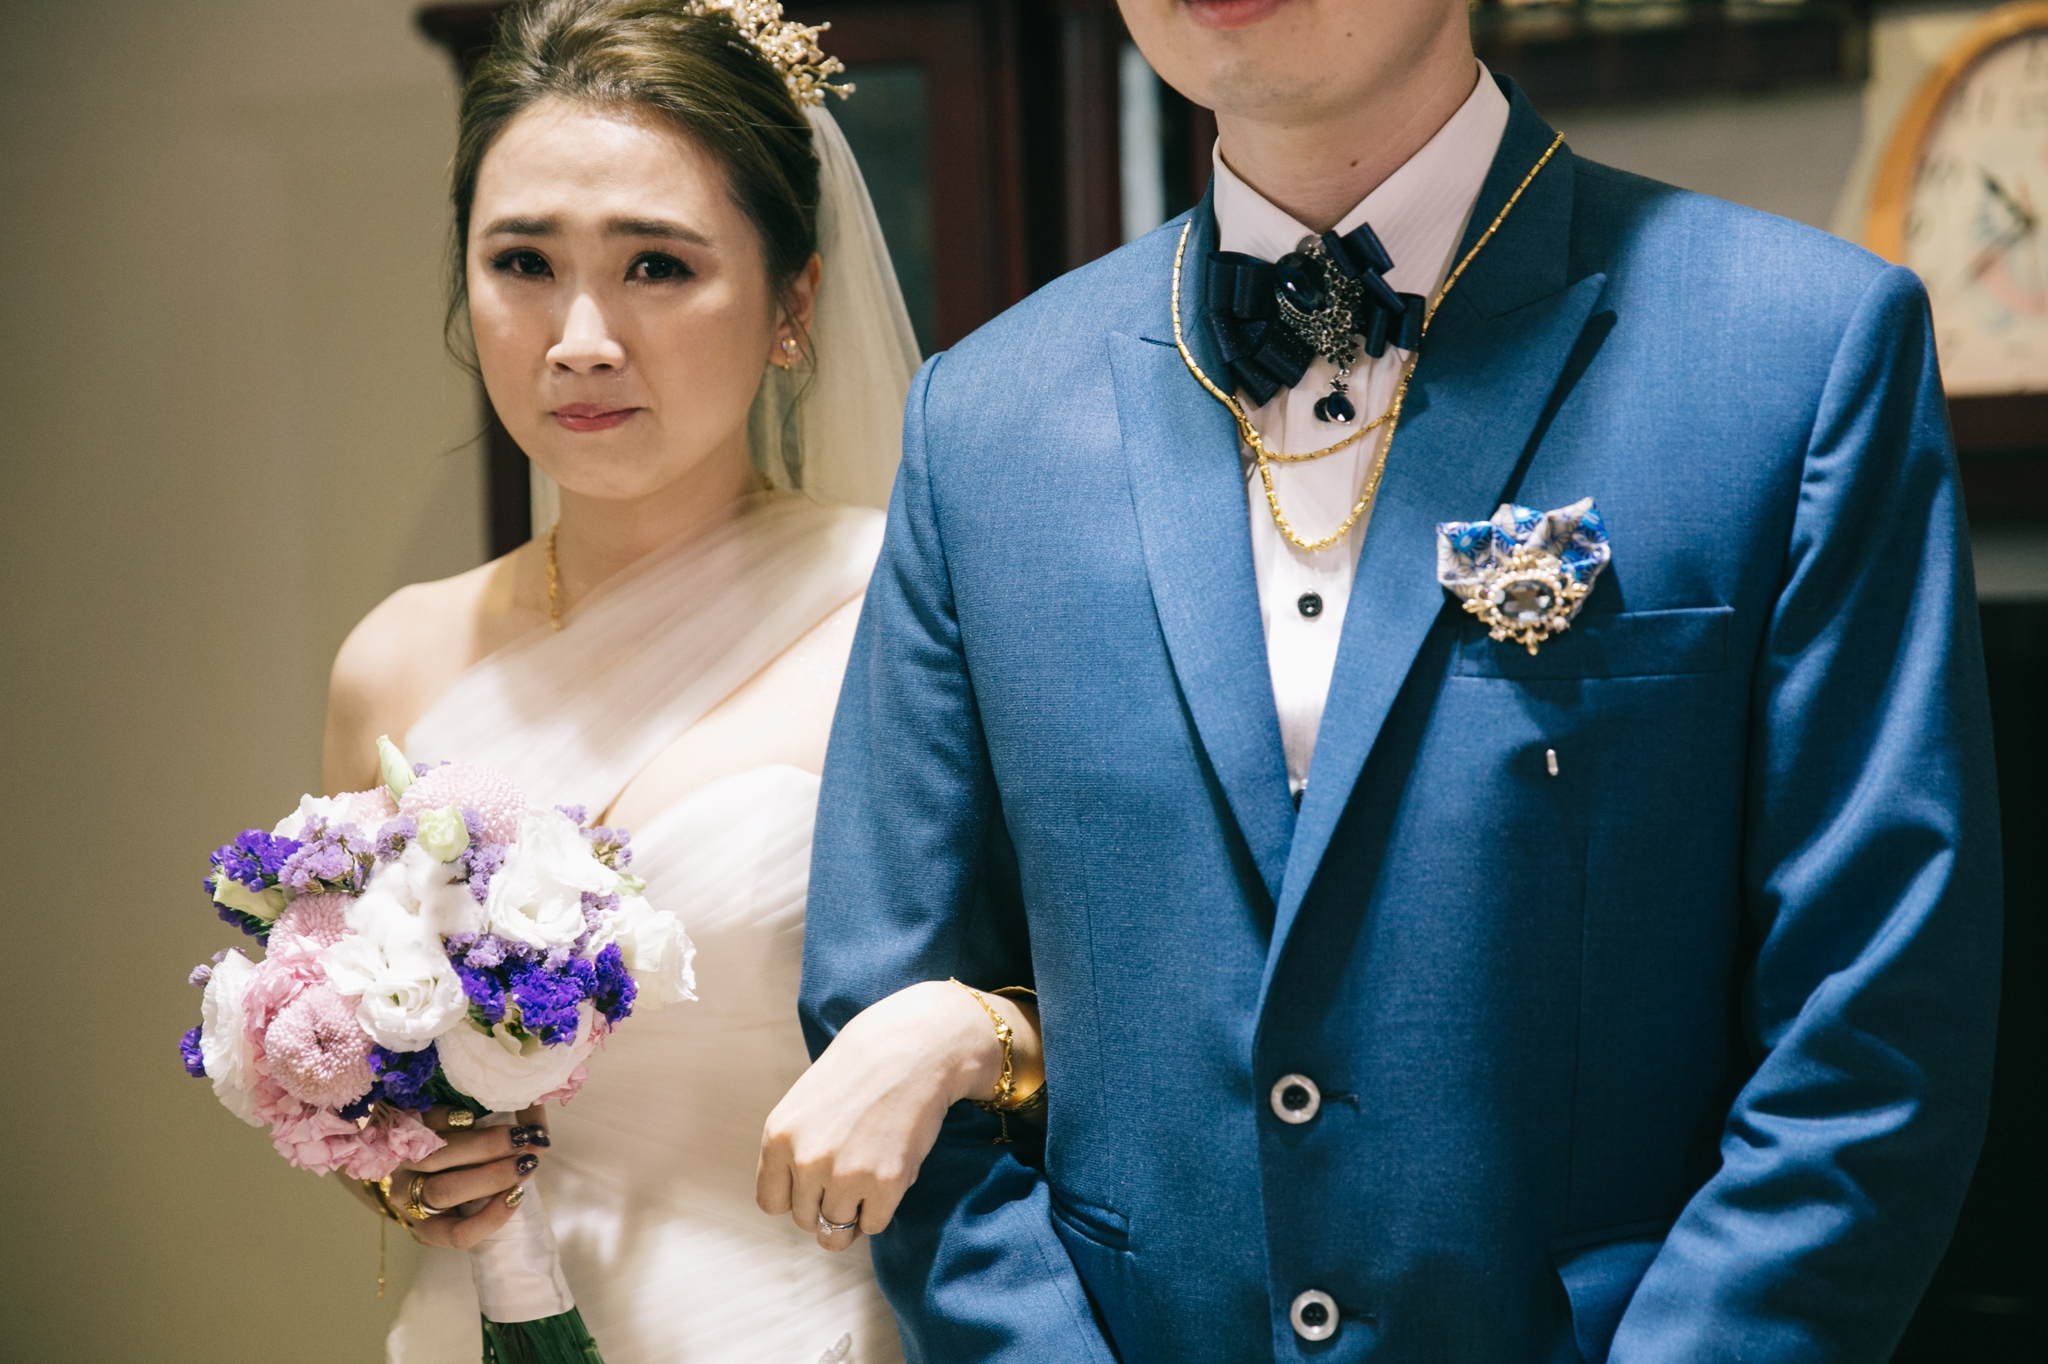 Keddy+Richard-wedding-新莊頤品飯店-094.jpg